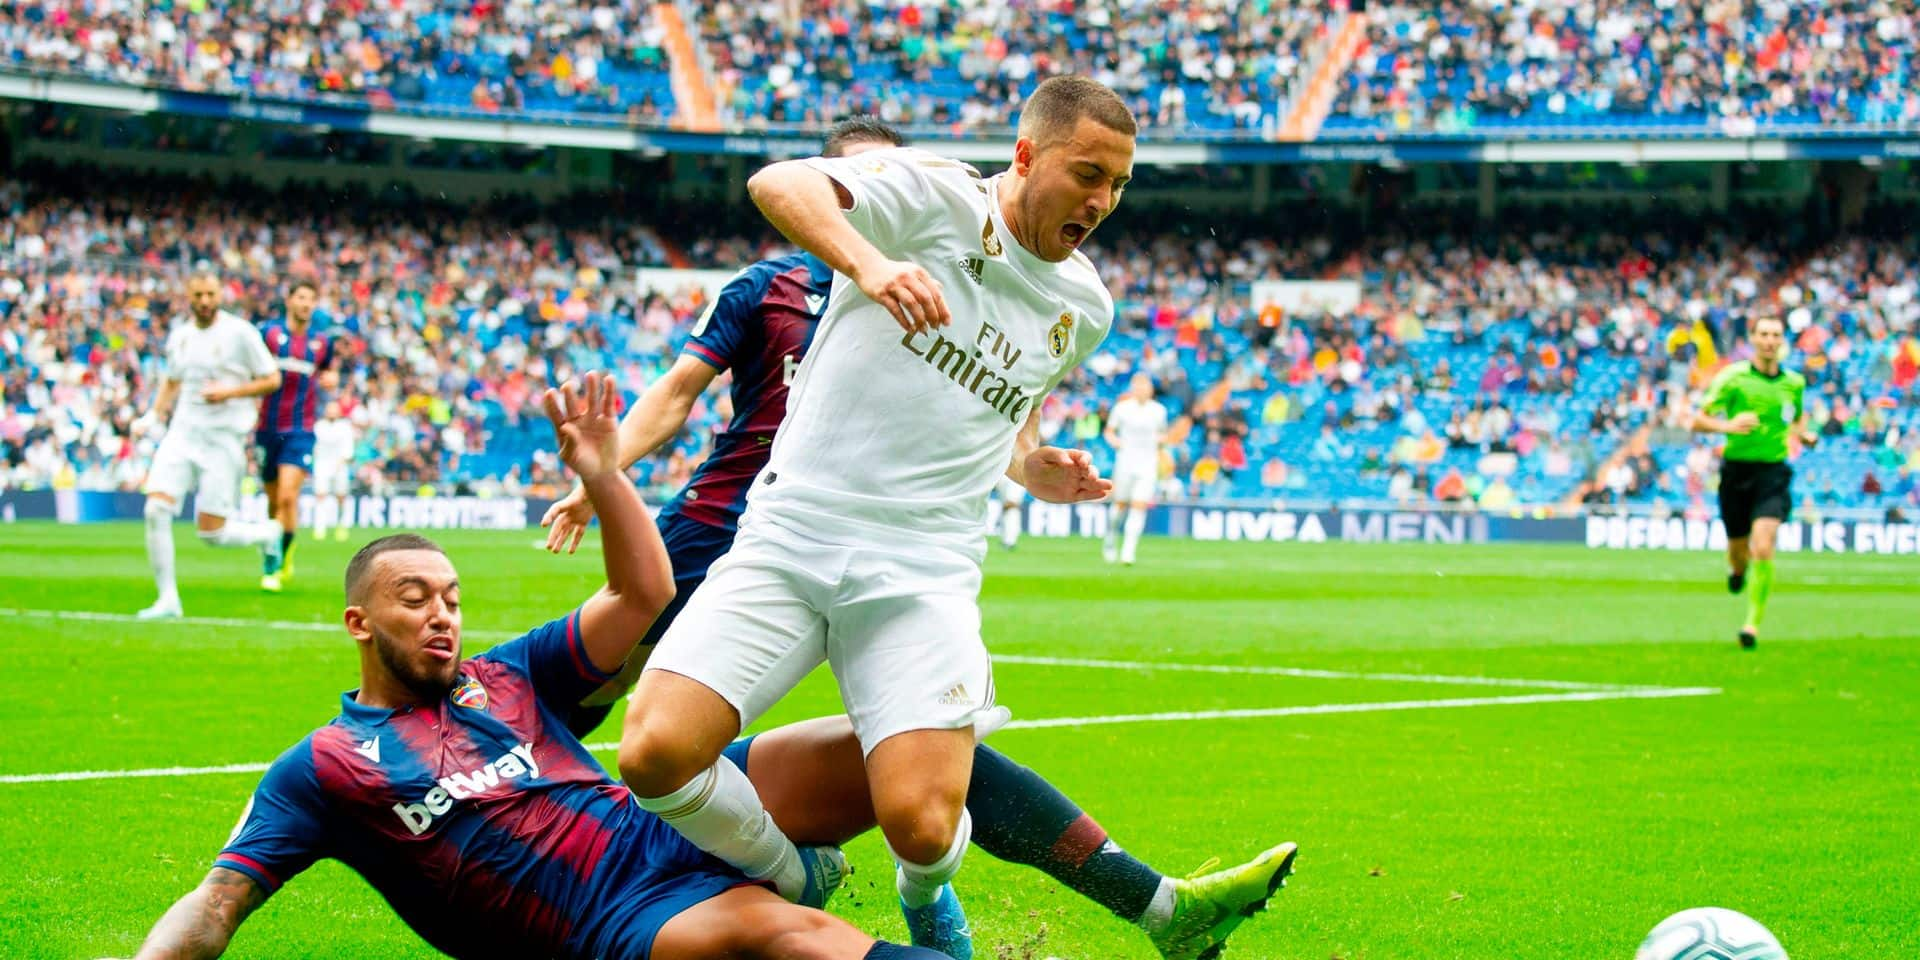 TOPSHOT - Levante's Portuguese defender Ruben Vezo (L) challenges Real Madrid's Belgian forward Eden Hazard (R) during the Spanish league football match Real Madrid CF against Levante UD at the Santiago Bernabeu stadium in Madrid on September 14, 2019. (Photo by CURTO DE LA TORRE / AFP)